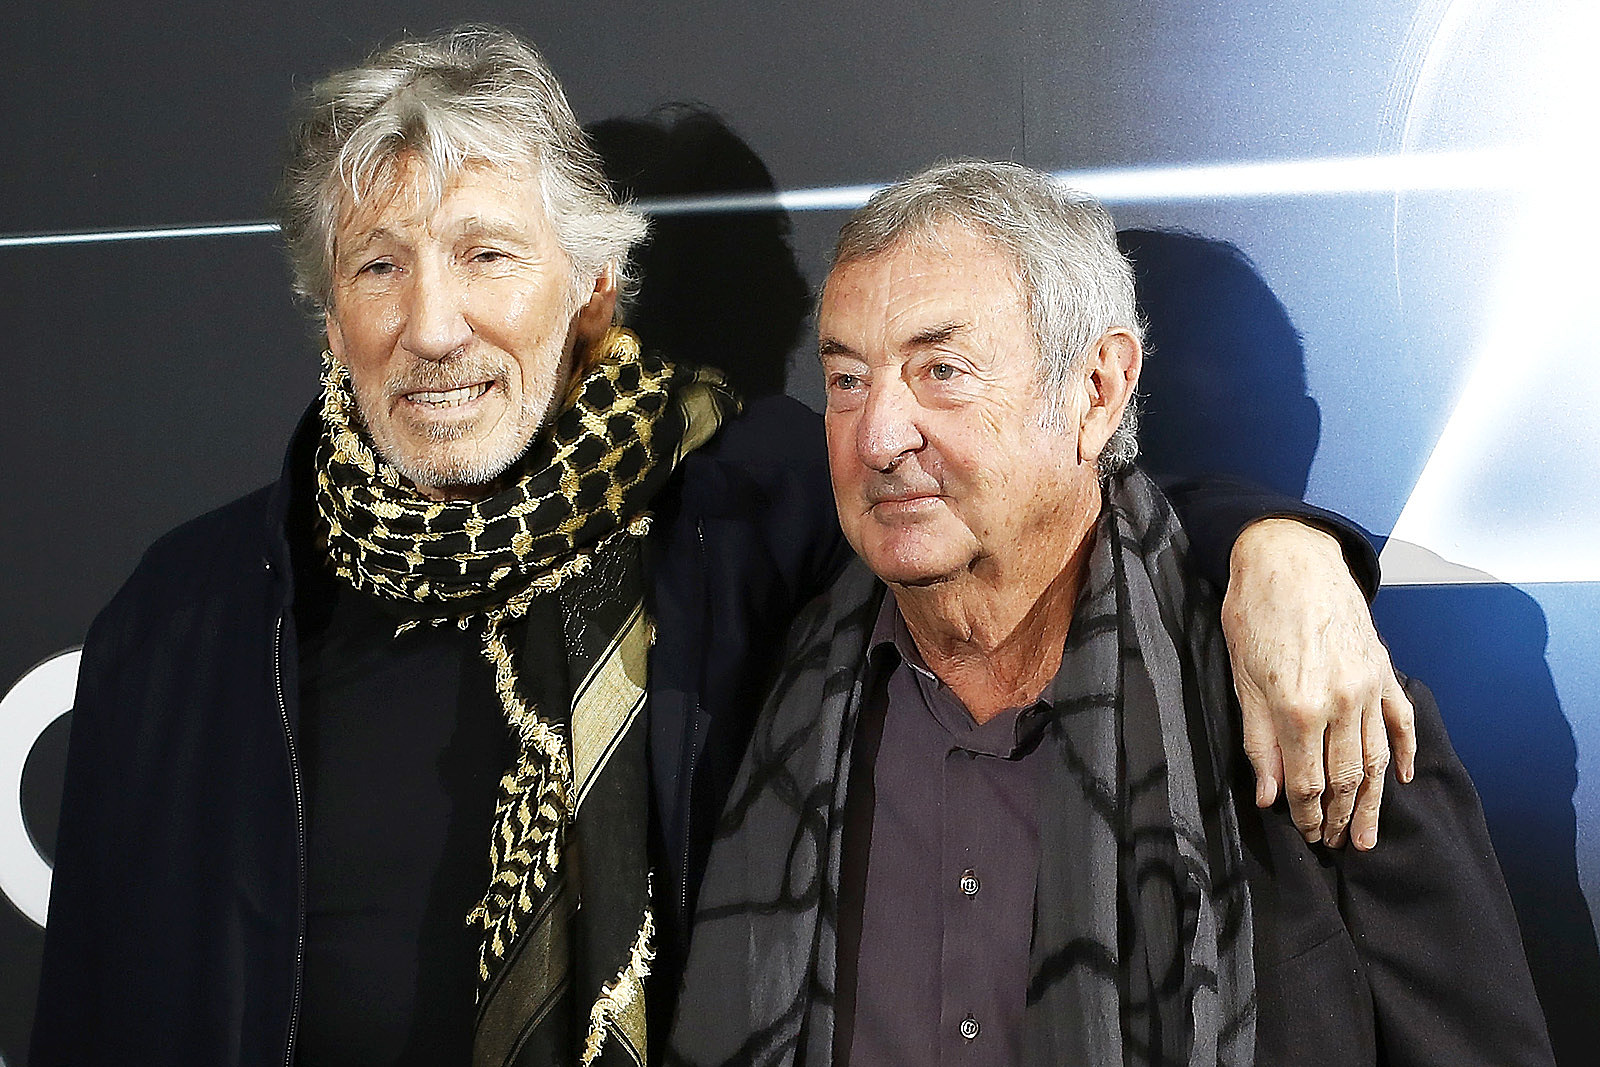 Watch Roger Waters Join Nick Mason on Stage For Pink Floyd Classic